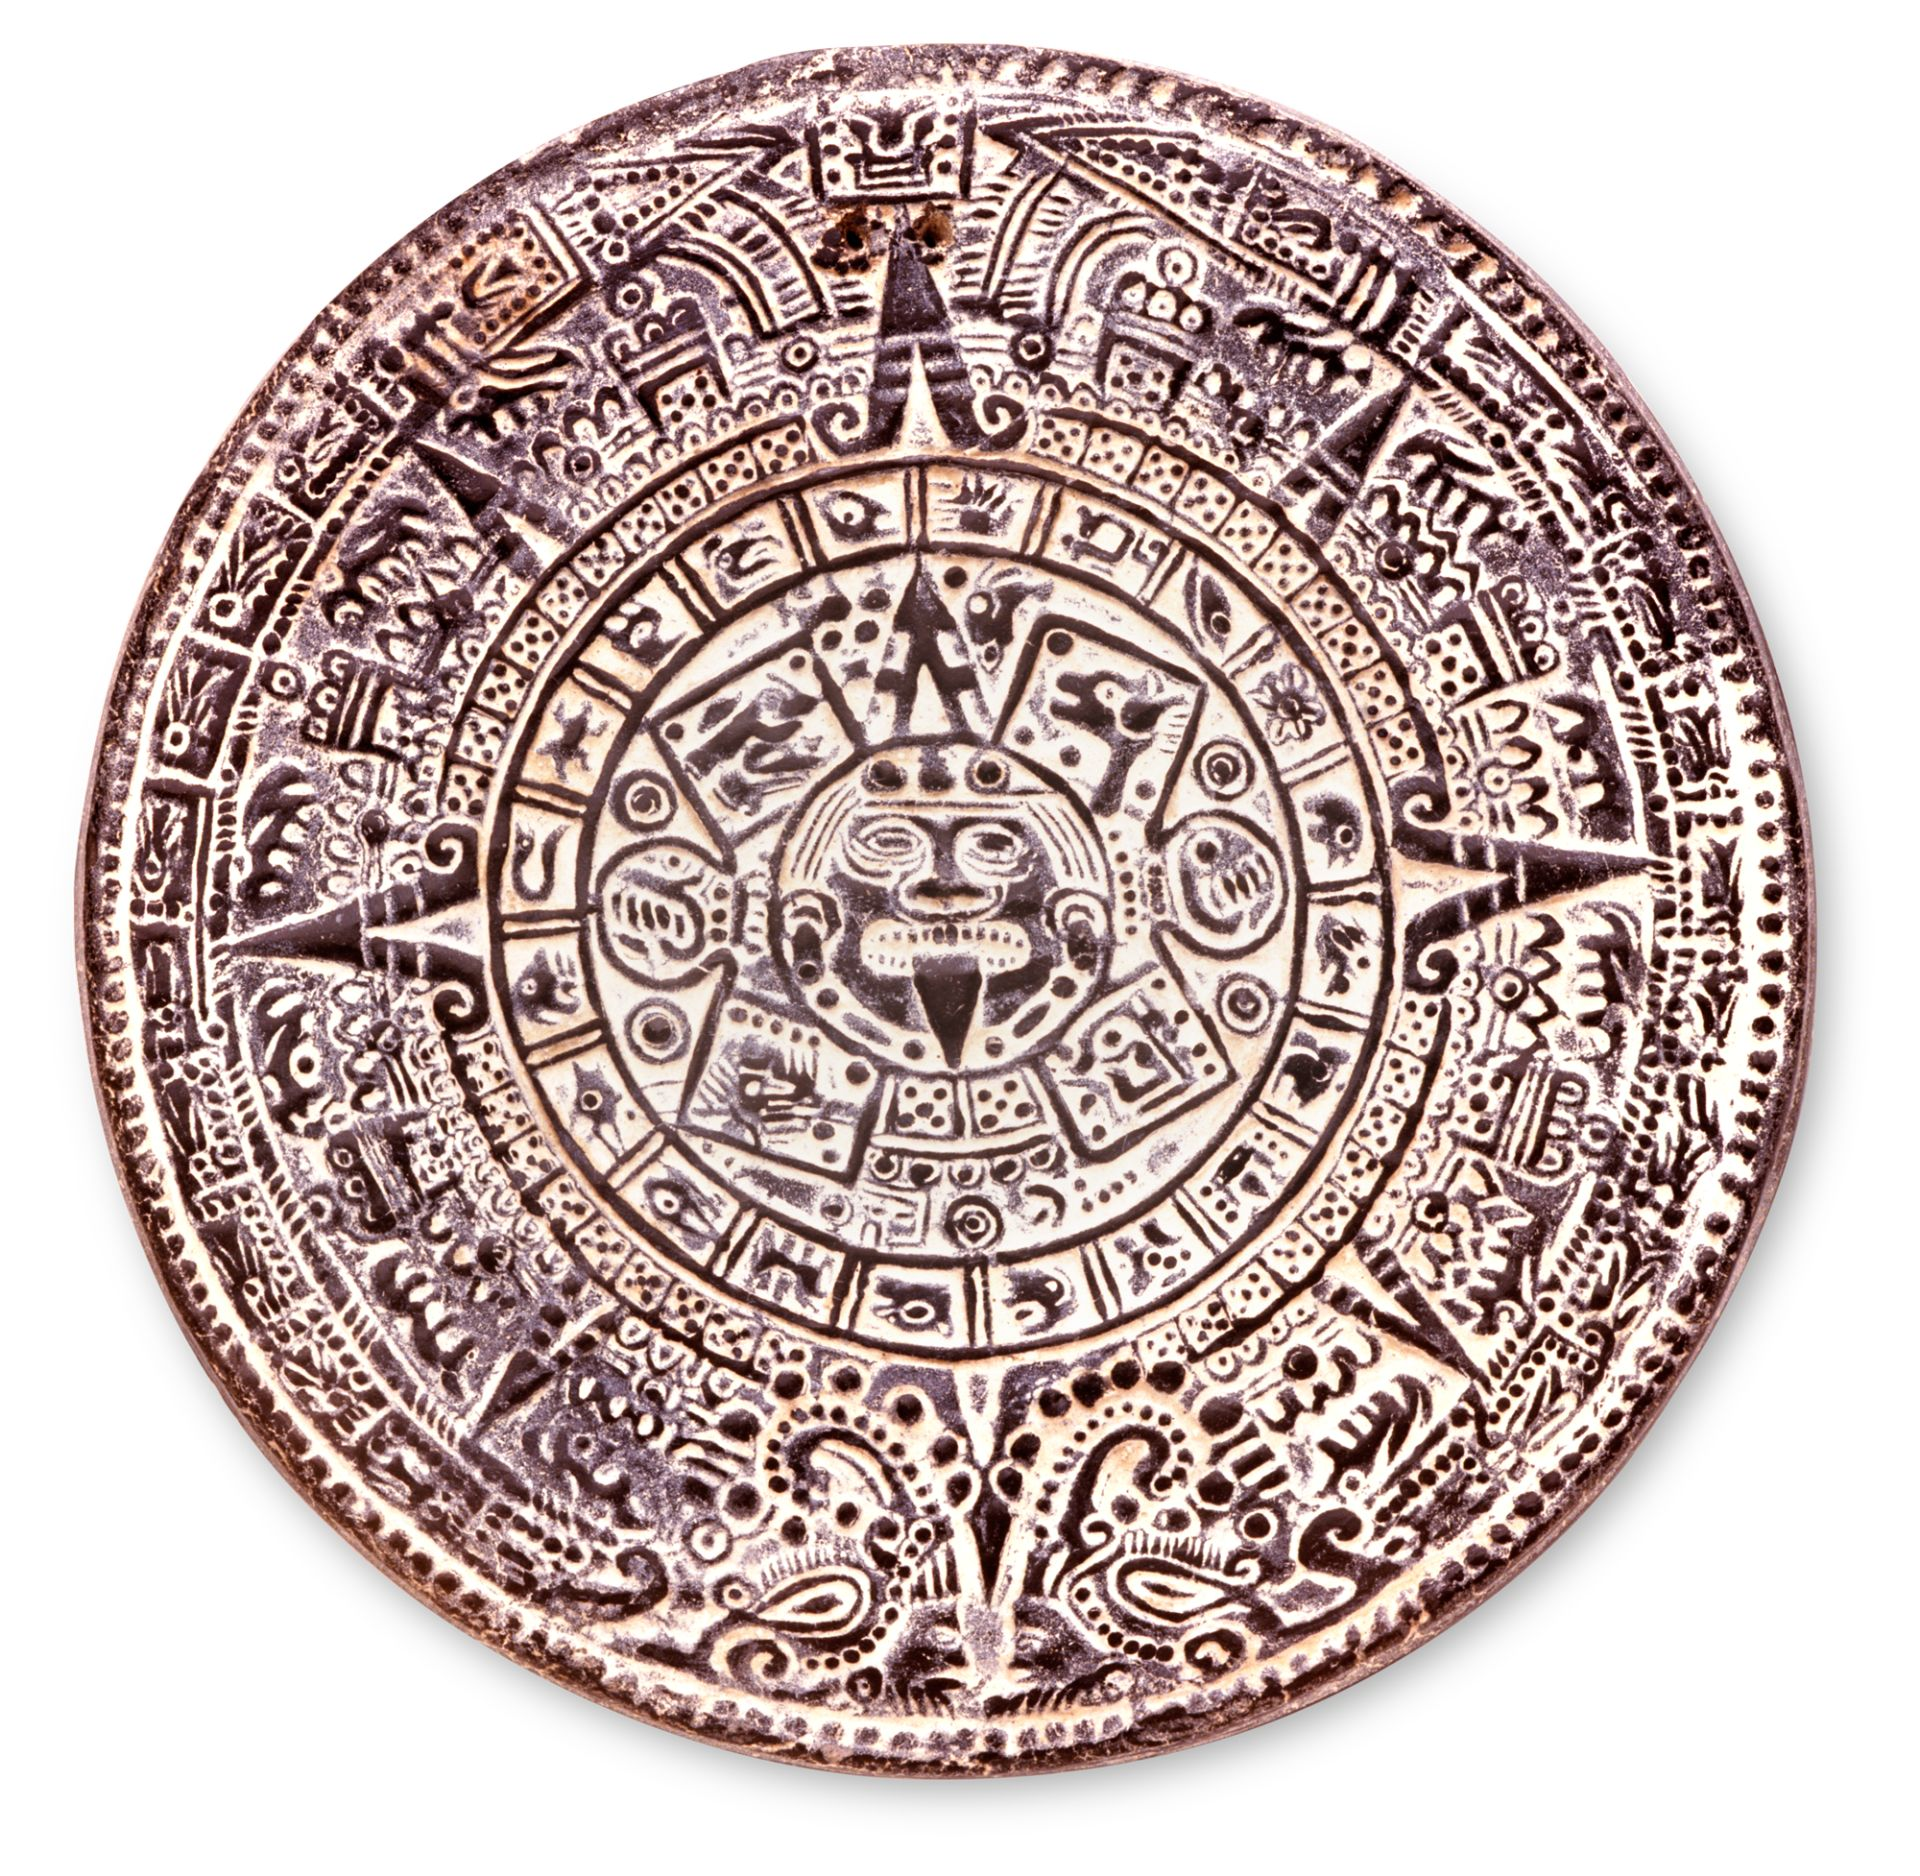 Aztec Calendar Stone Aztec Calendar Facts Dk Find Out